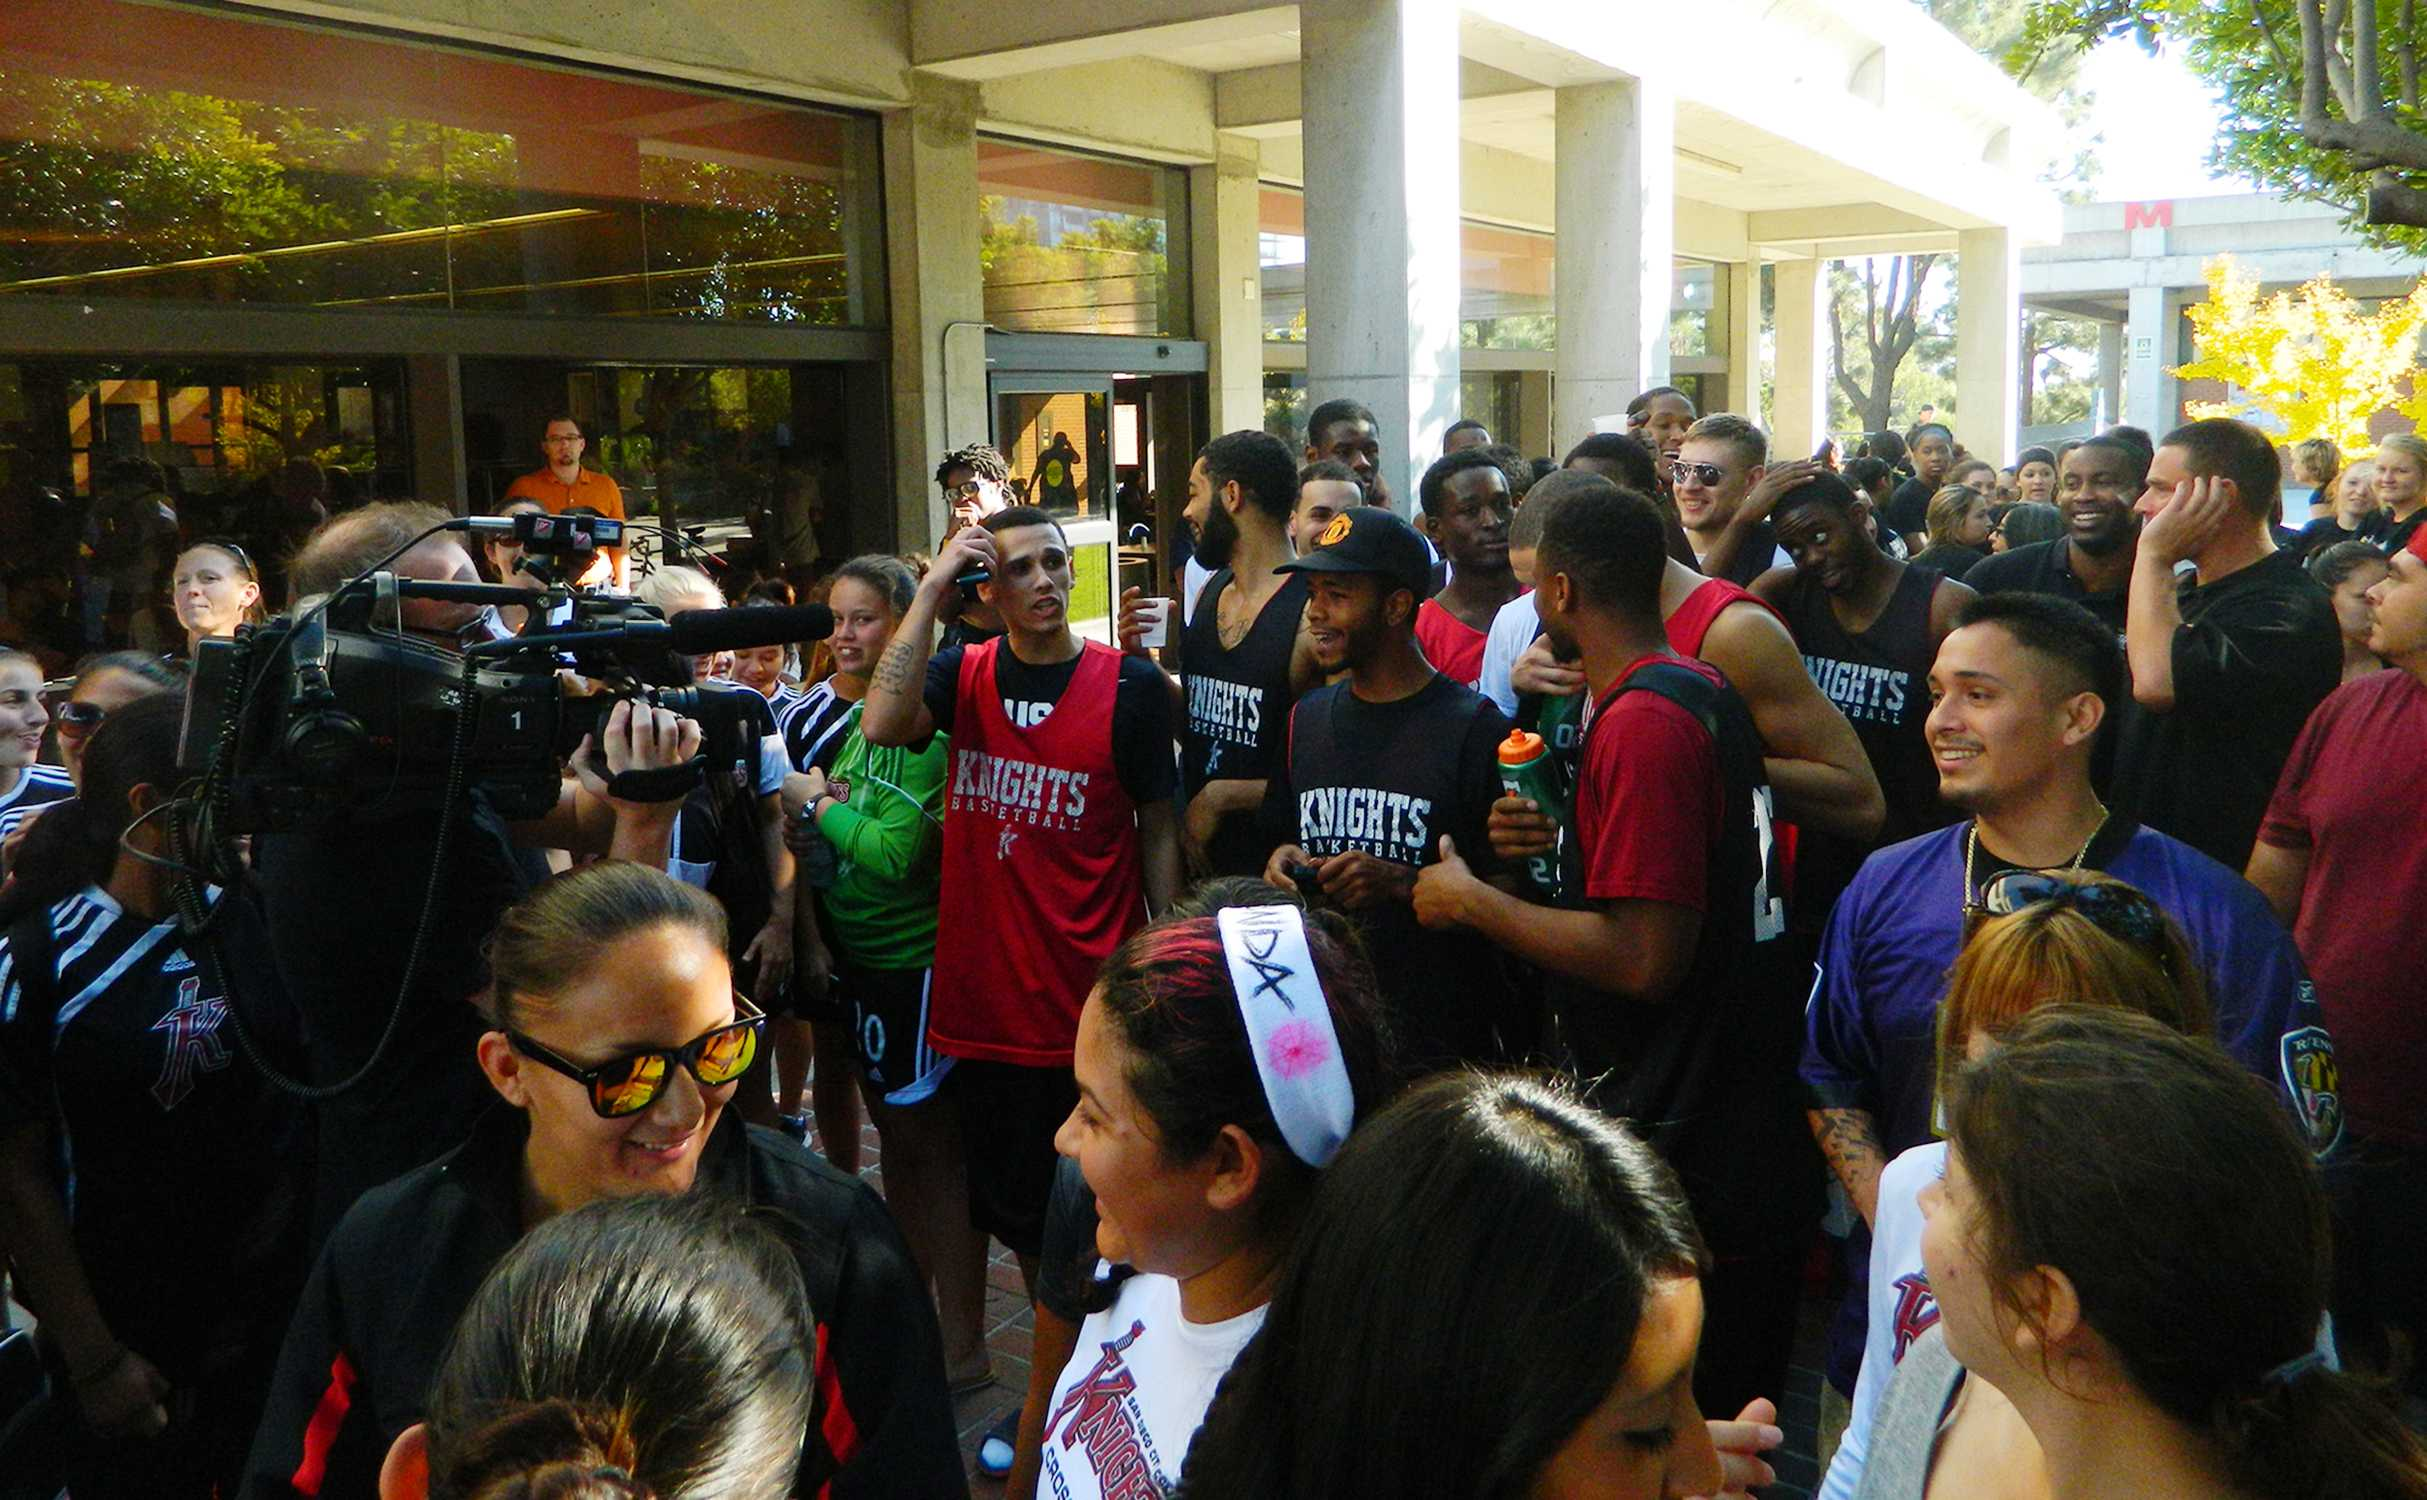 The basketball team, other Lady Knights squads, faculty, local media and students prior to the 2K Fun Run that started in the Gorton Quad and wound through campus. Chris Handloser, City Times.